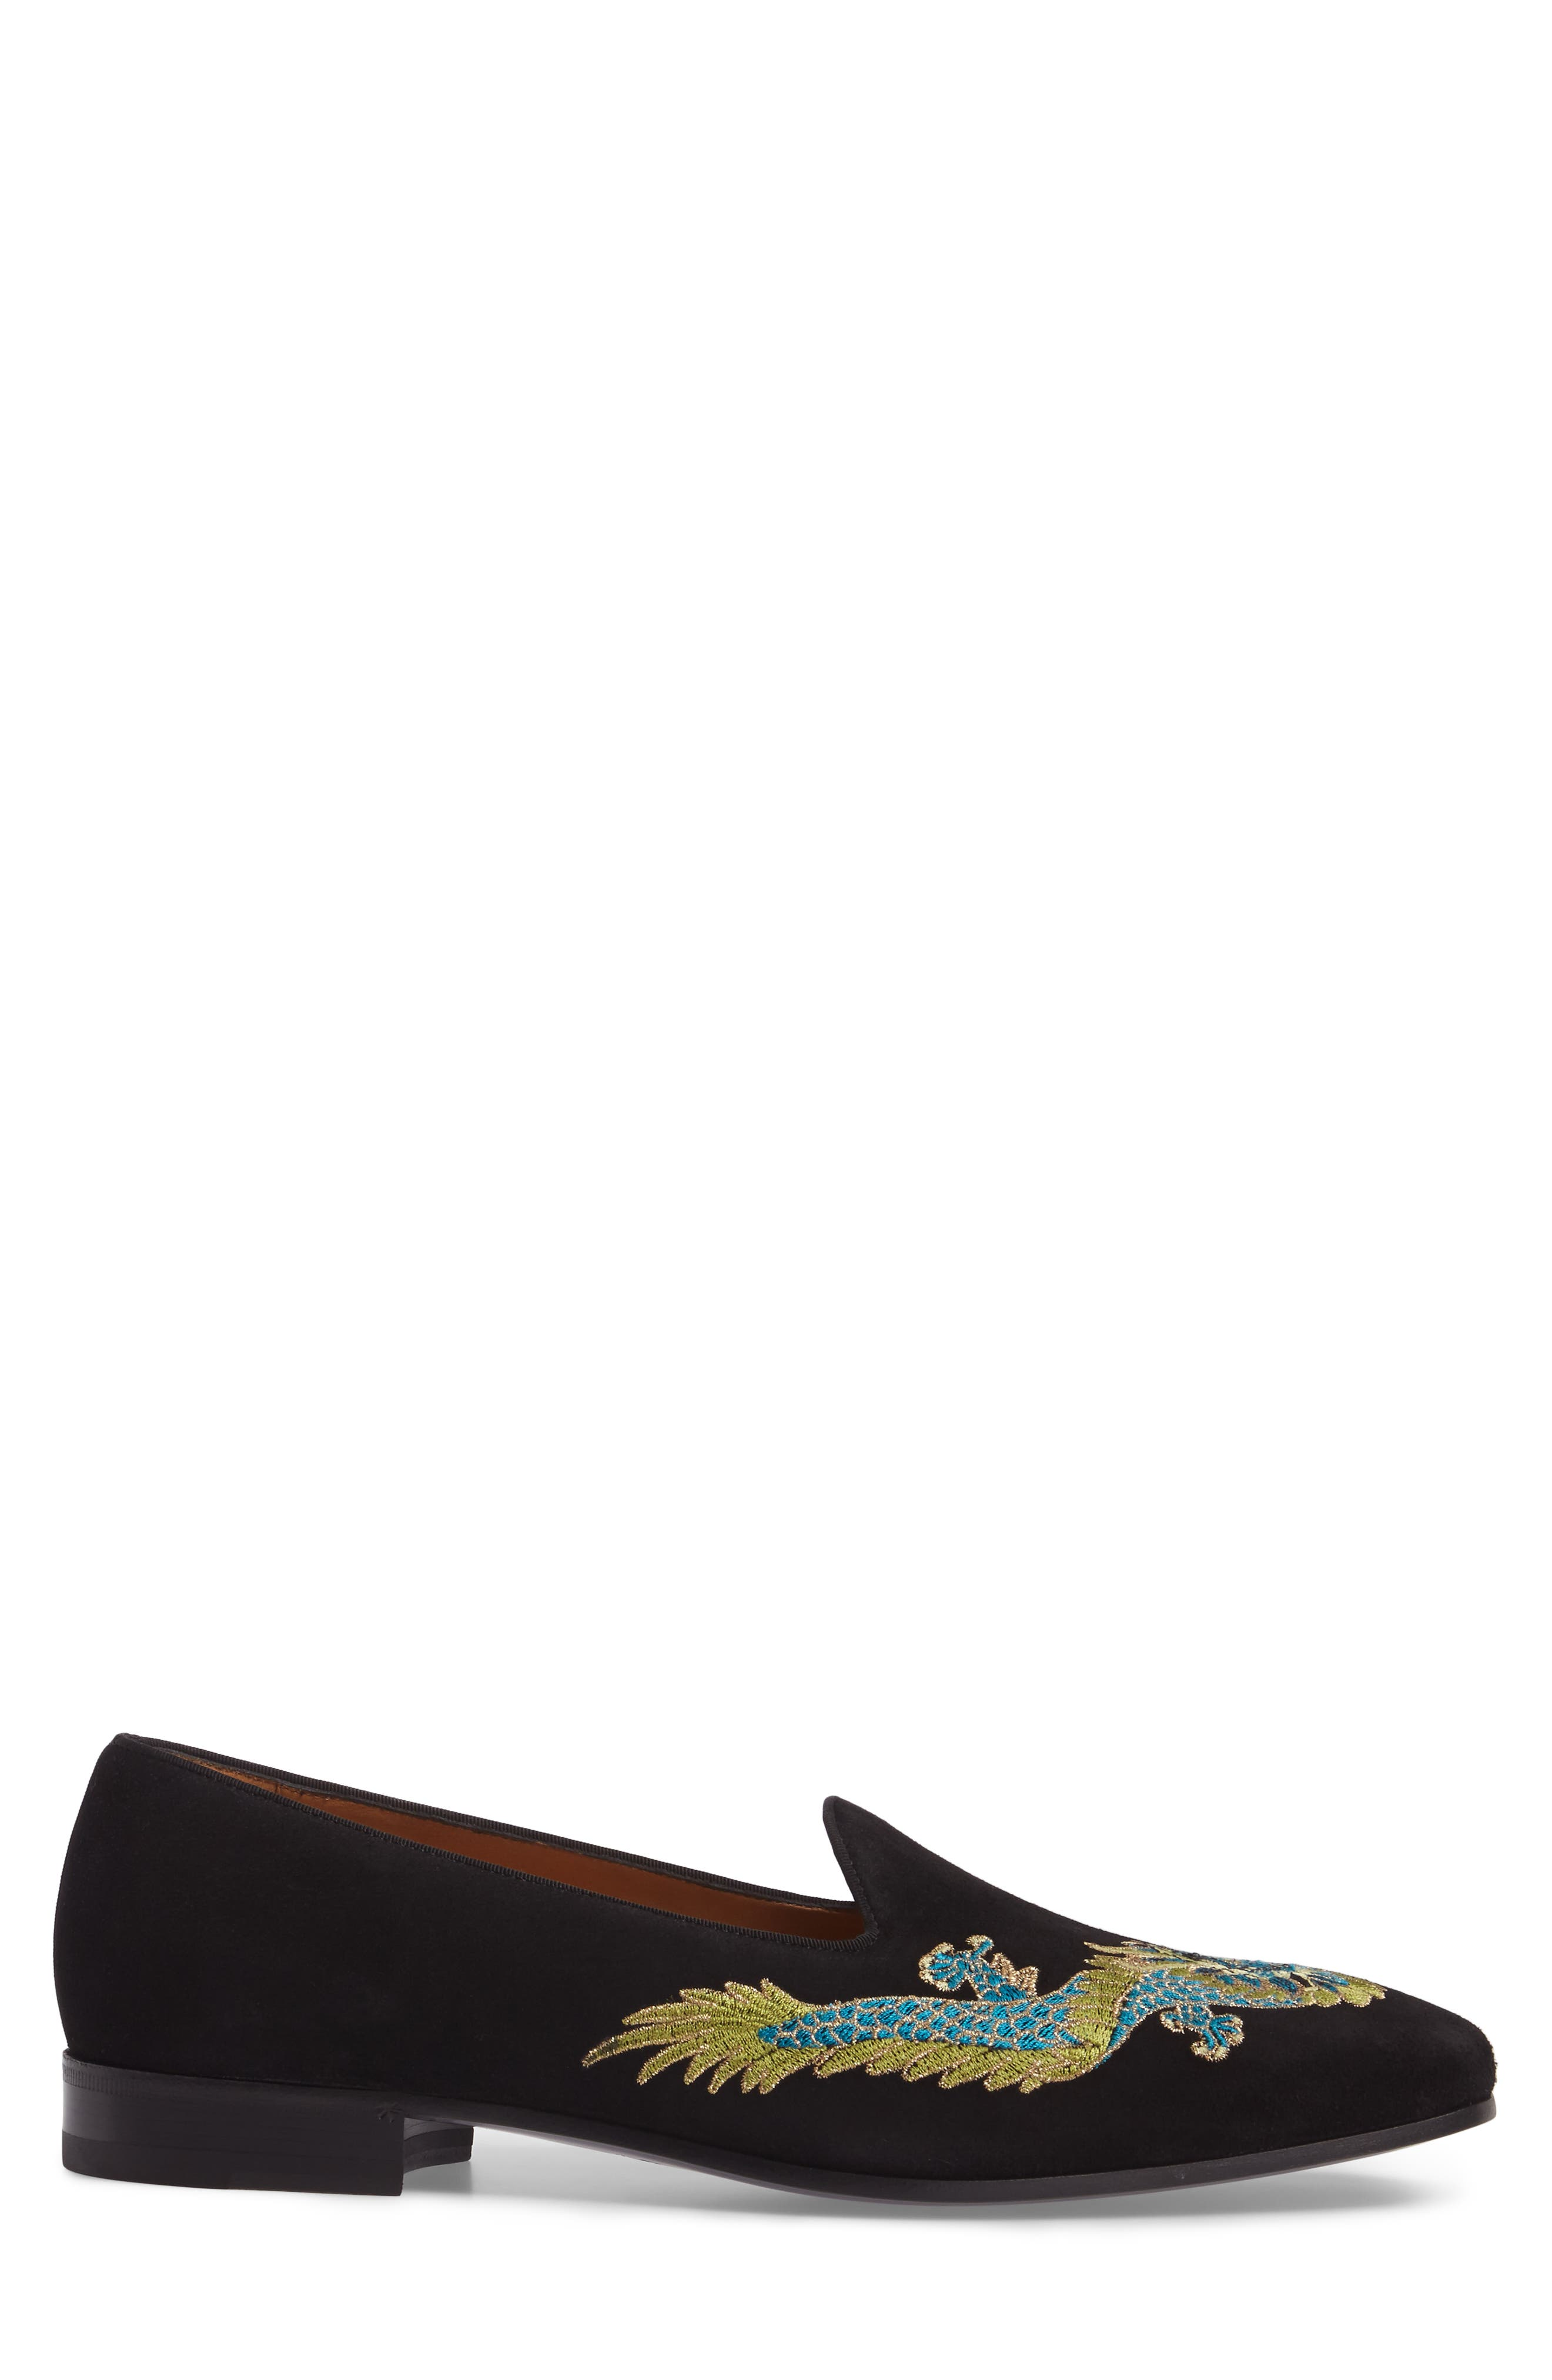 Dragon Embroidered Suede Loafer,                             Alternate thumbnail 3, color,                             BLACK SUEDE